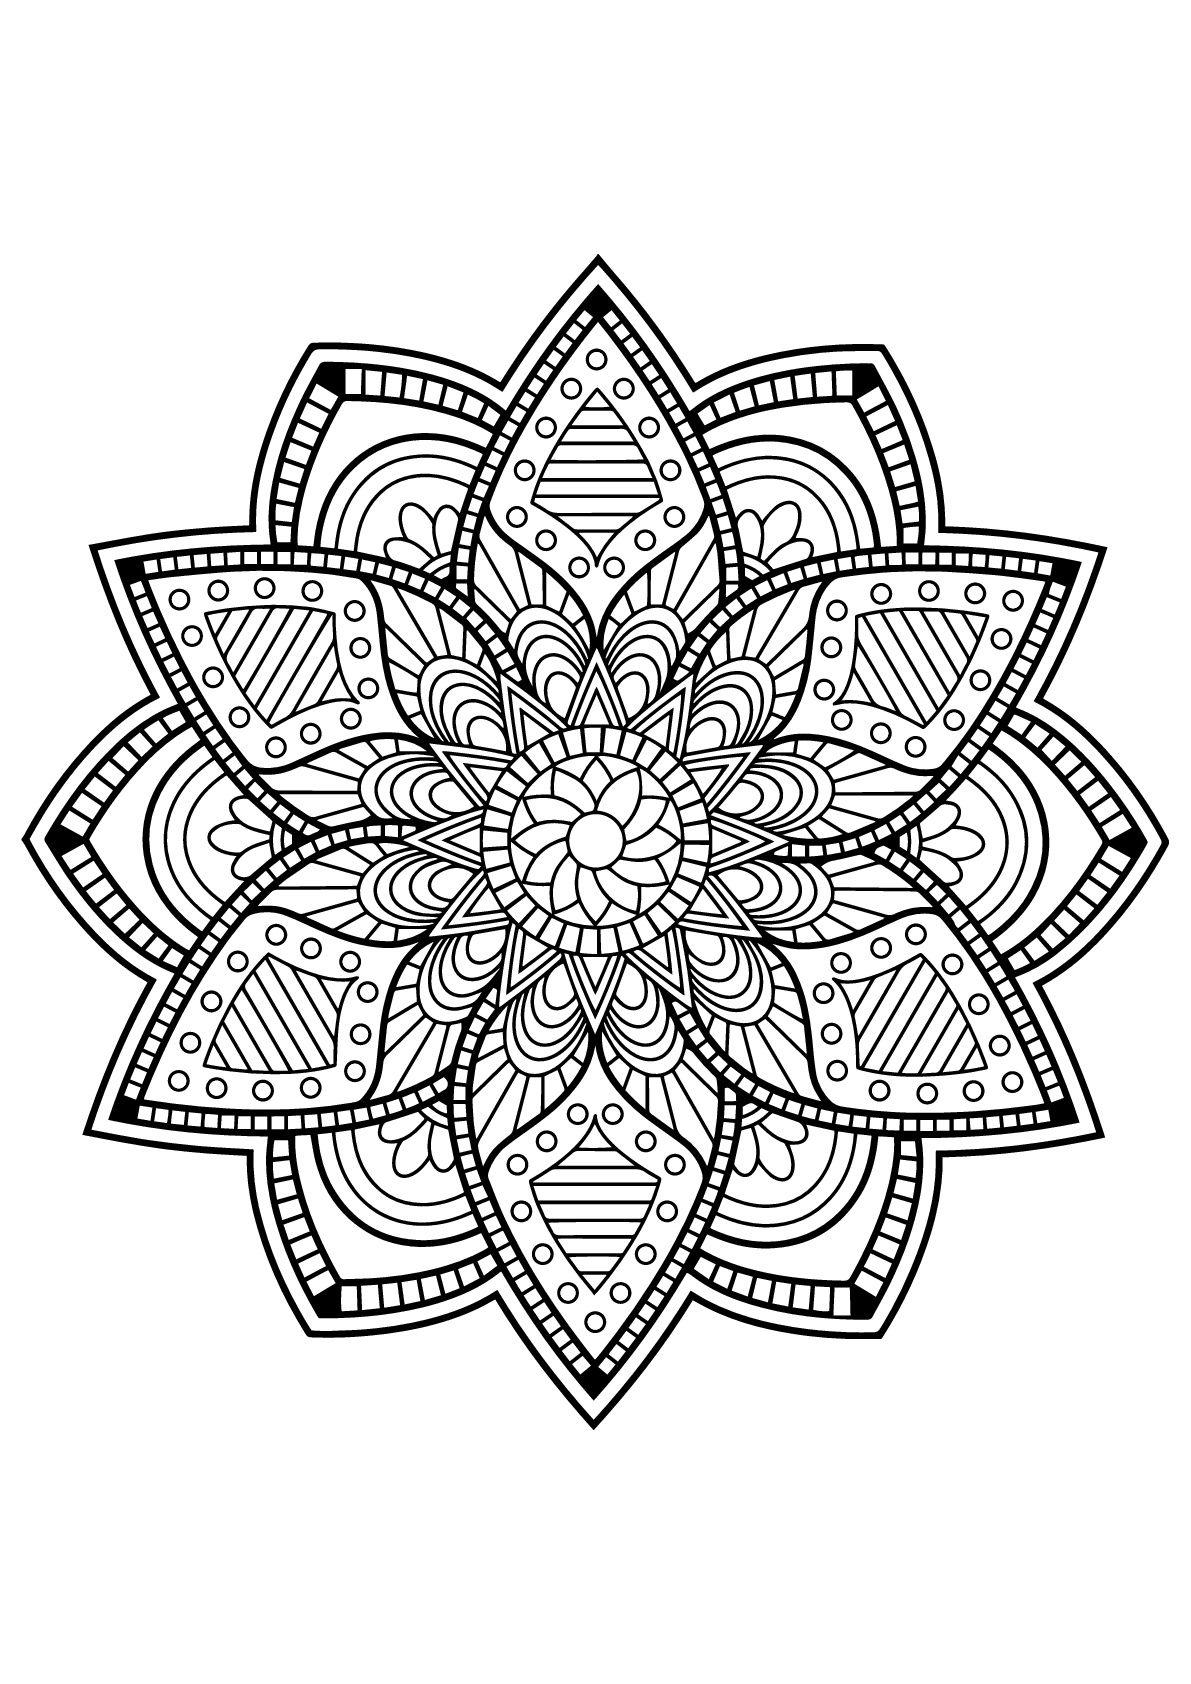 mandalas to color for adults 20 free printable mandala coloring pages for adults color mandalas for to adults